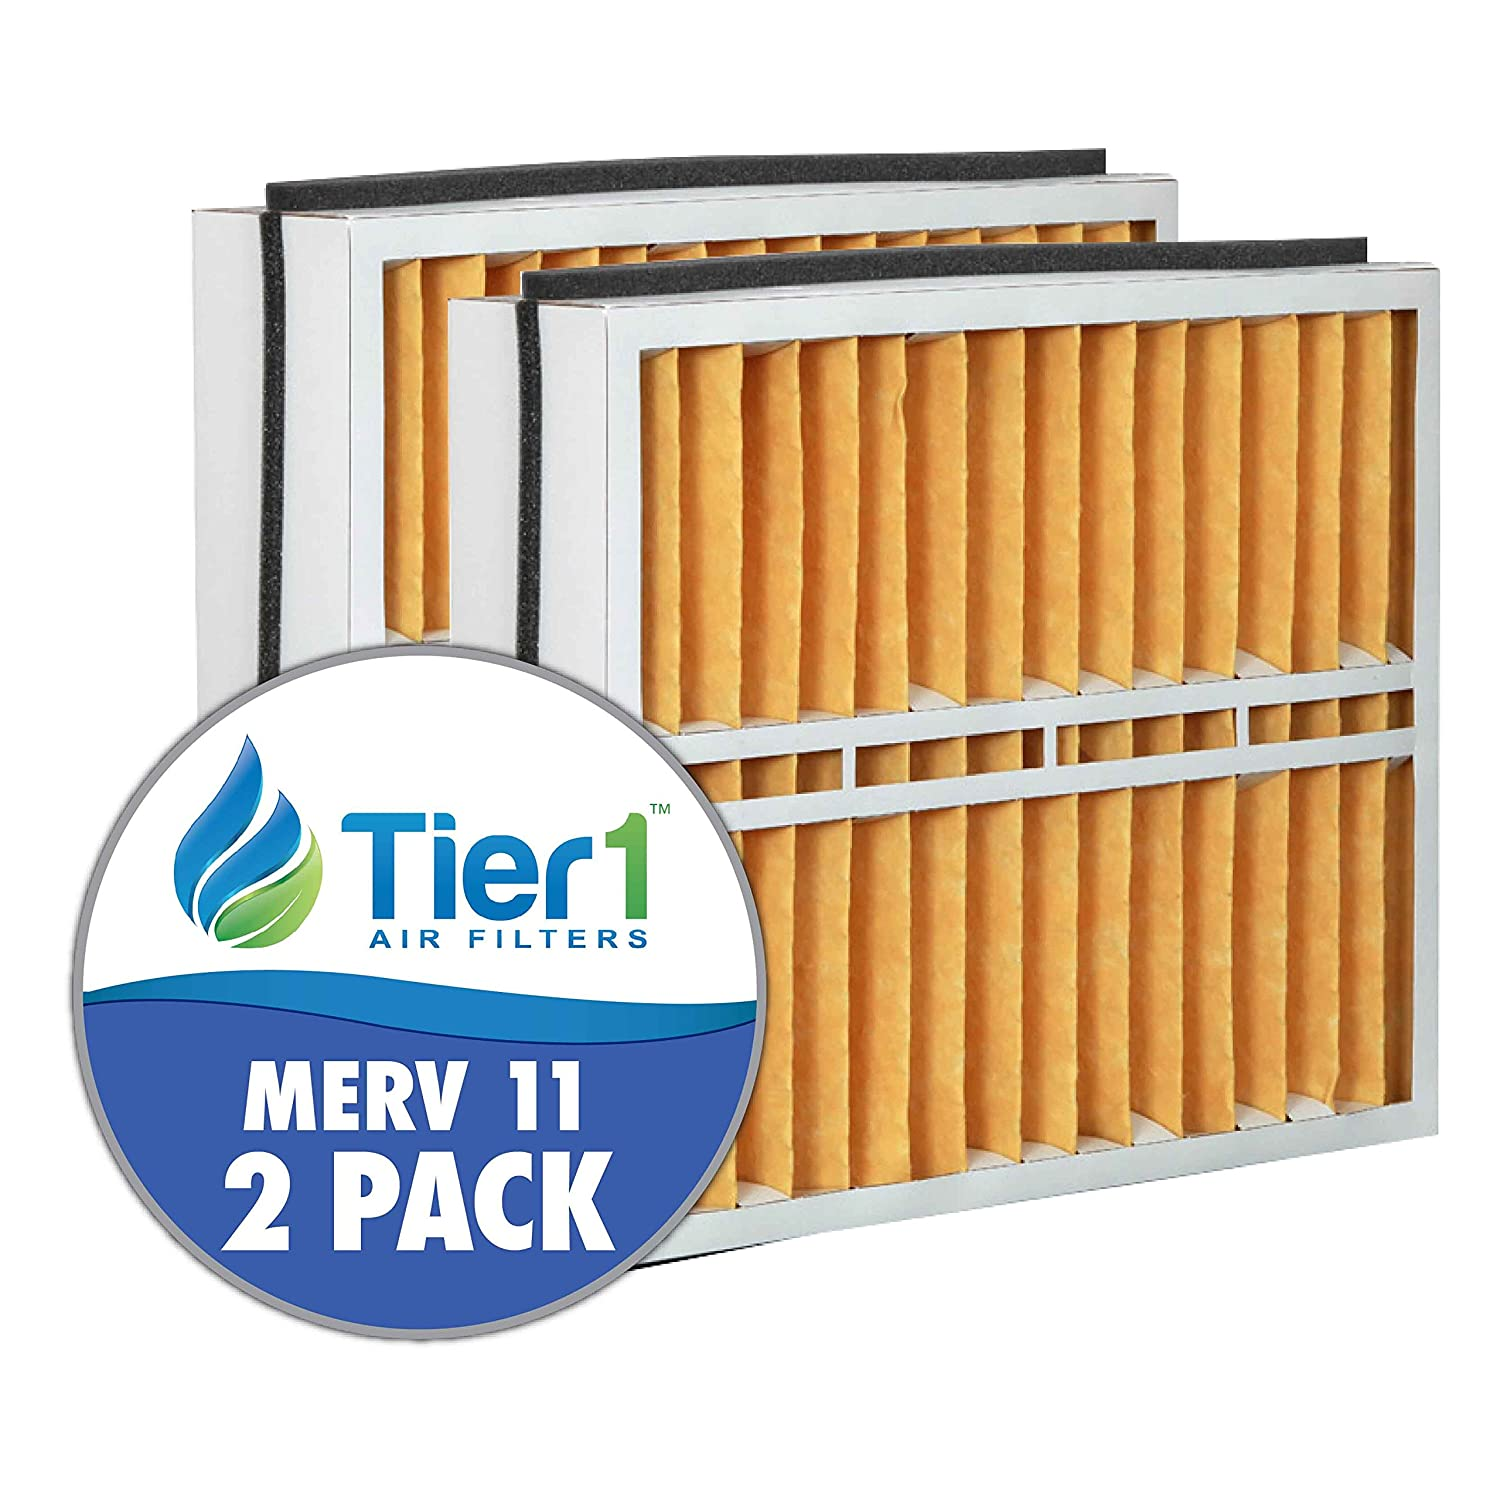 Amazon trane flr06069 american standard bayftfr17m 175x27x5 amazon trane flr06069 american standard bayftfr17m 175x27x5 merv 11 replacement air filter 2 pack home improvement publicscrutiny Image collections